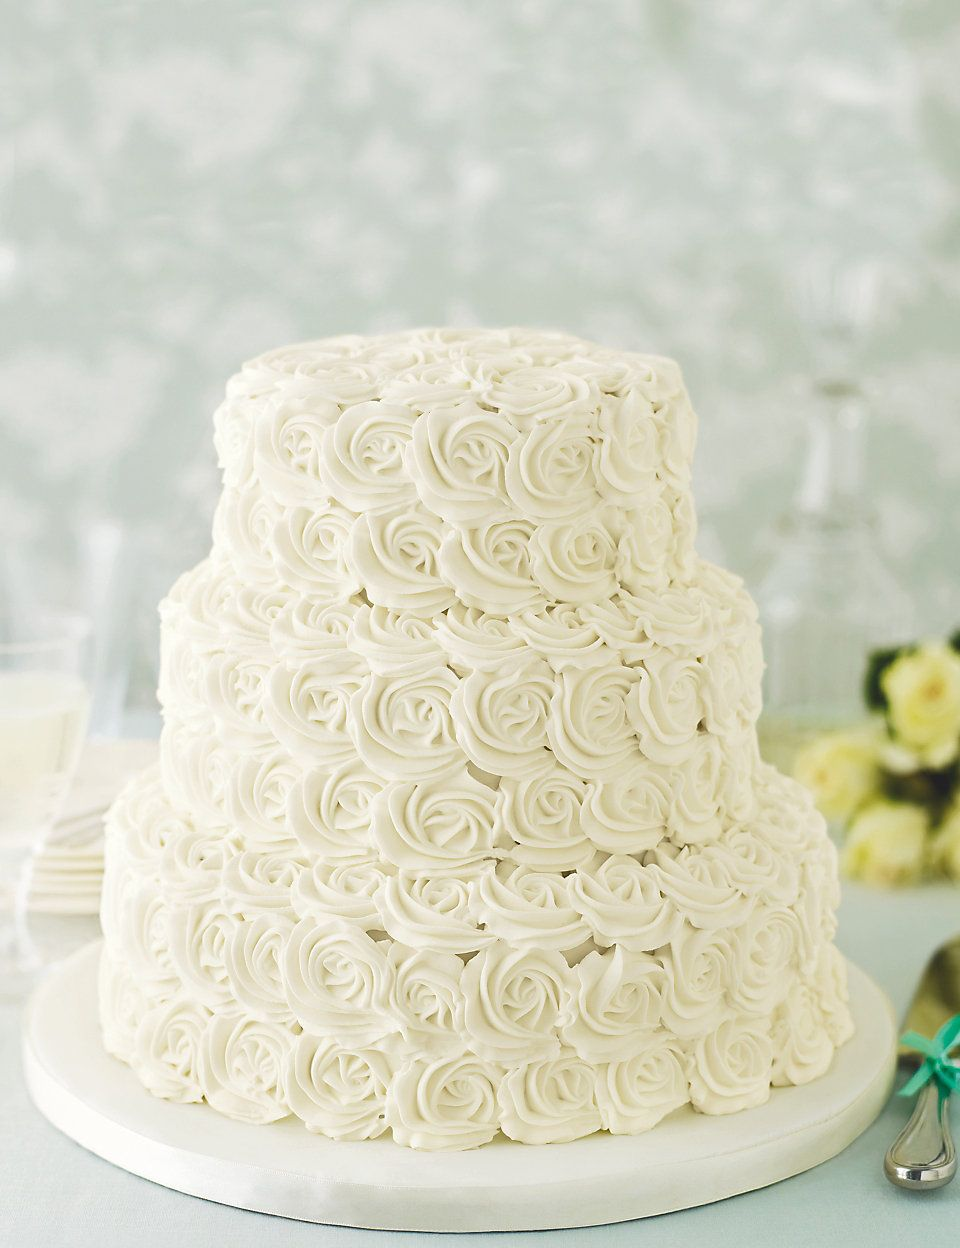 Rose Sponge Wedding Cake | M&S | BEAUTIFUL CAKES | Pinterest ...